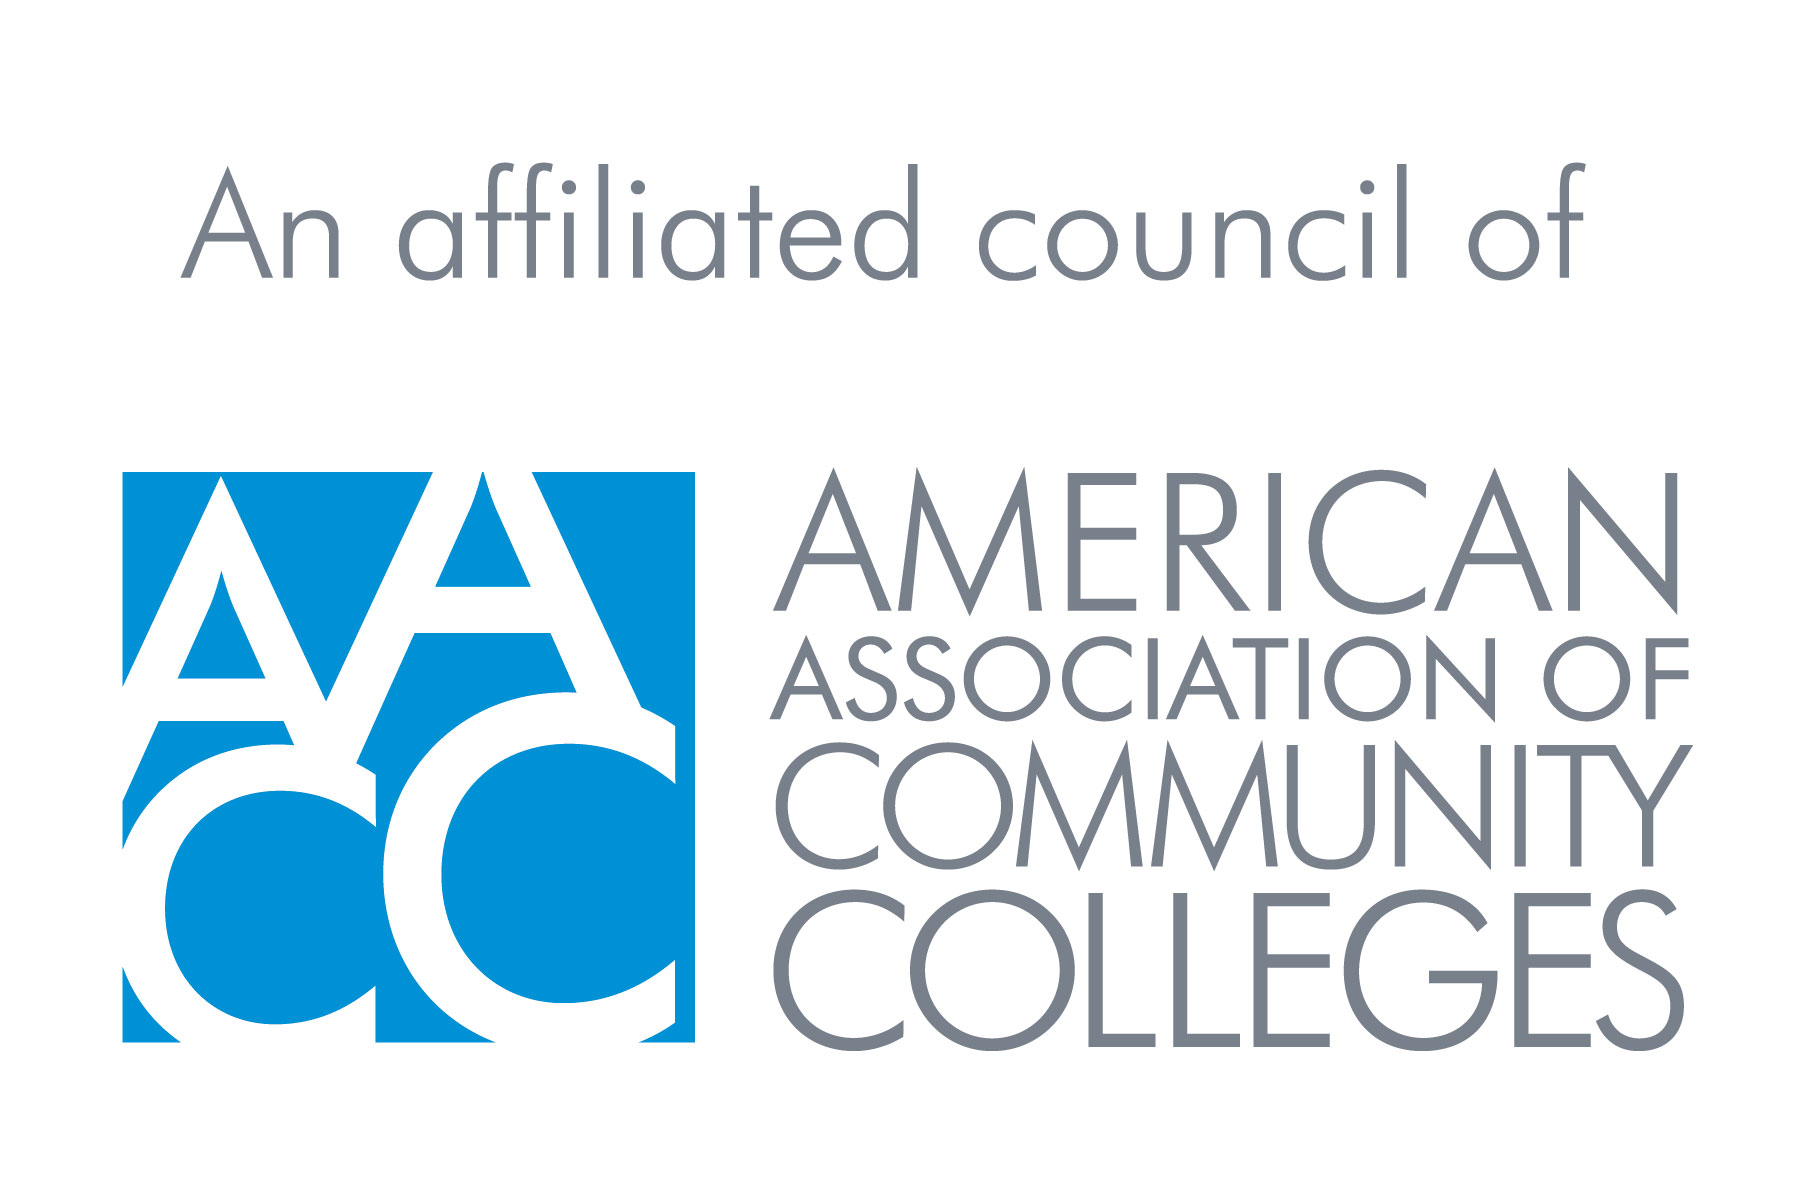 The American Association of Community Colleges (AACC) is the primary advocacy organization for the nation\'s community colleges. The association represents nearly 1,200 two-year, associate degree-granting institutions and more than 13 million students.